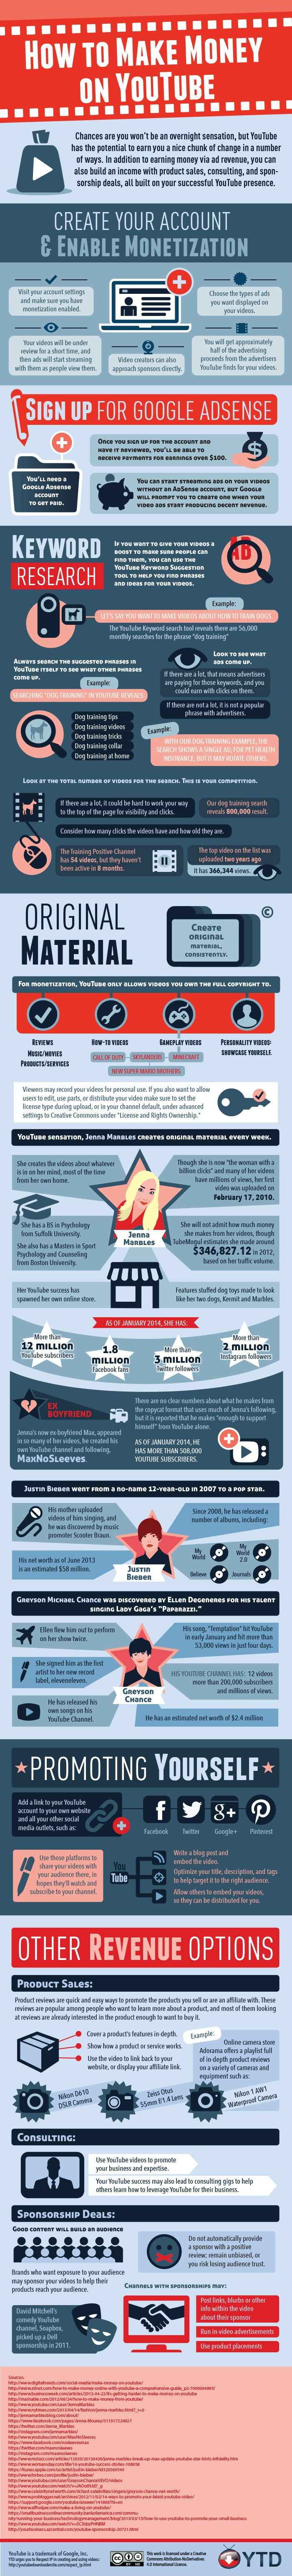 How to Make Money on YouTube (Infographic) - Bakerview